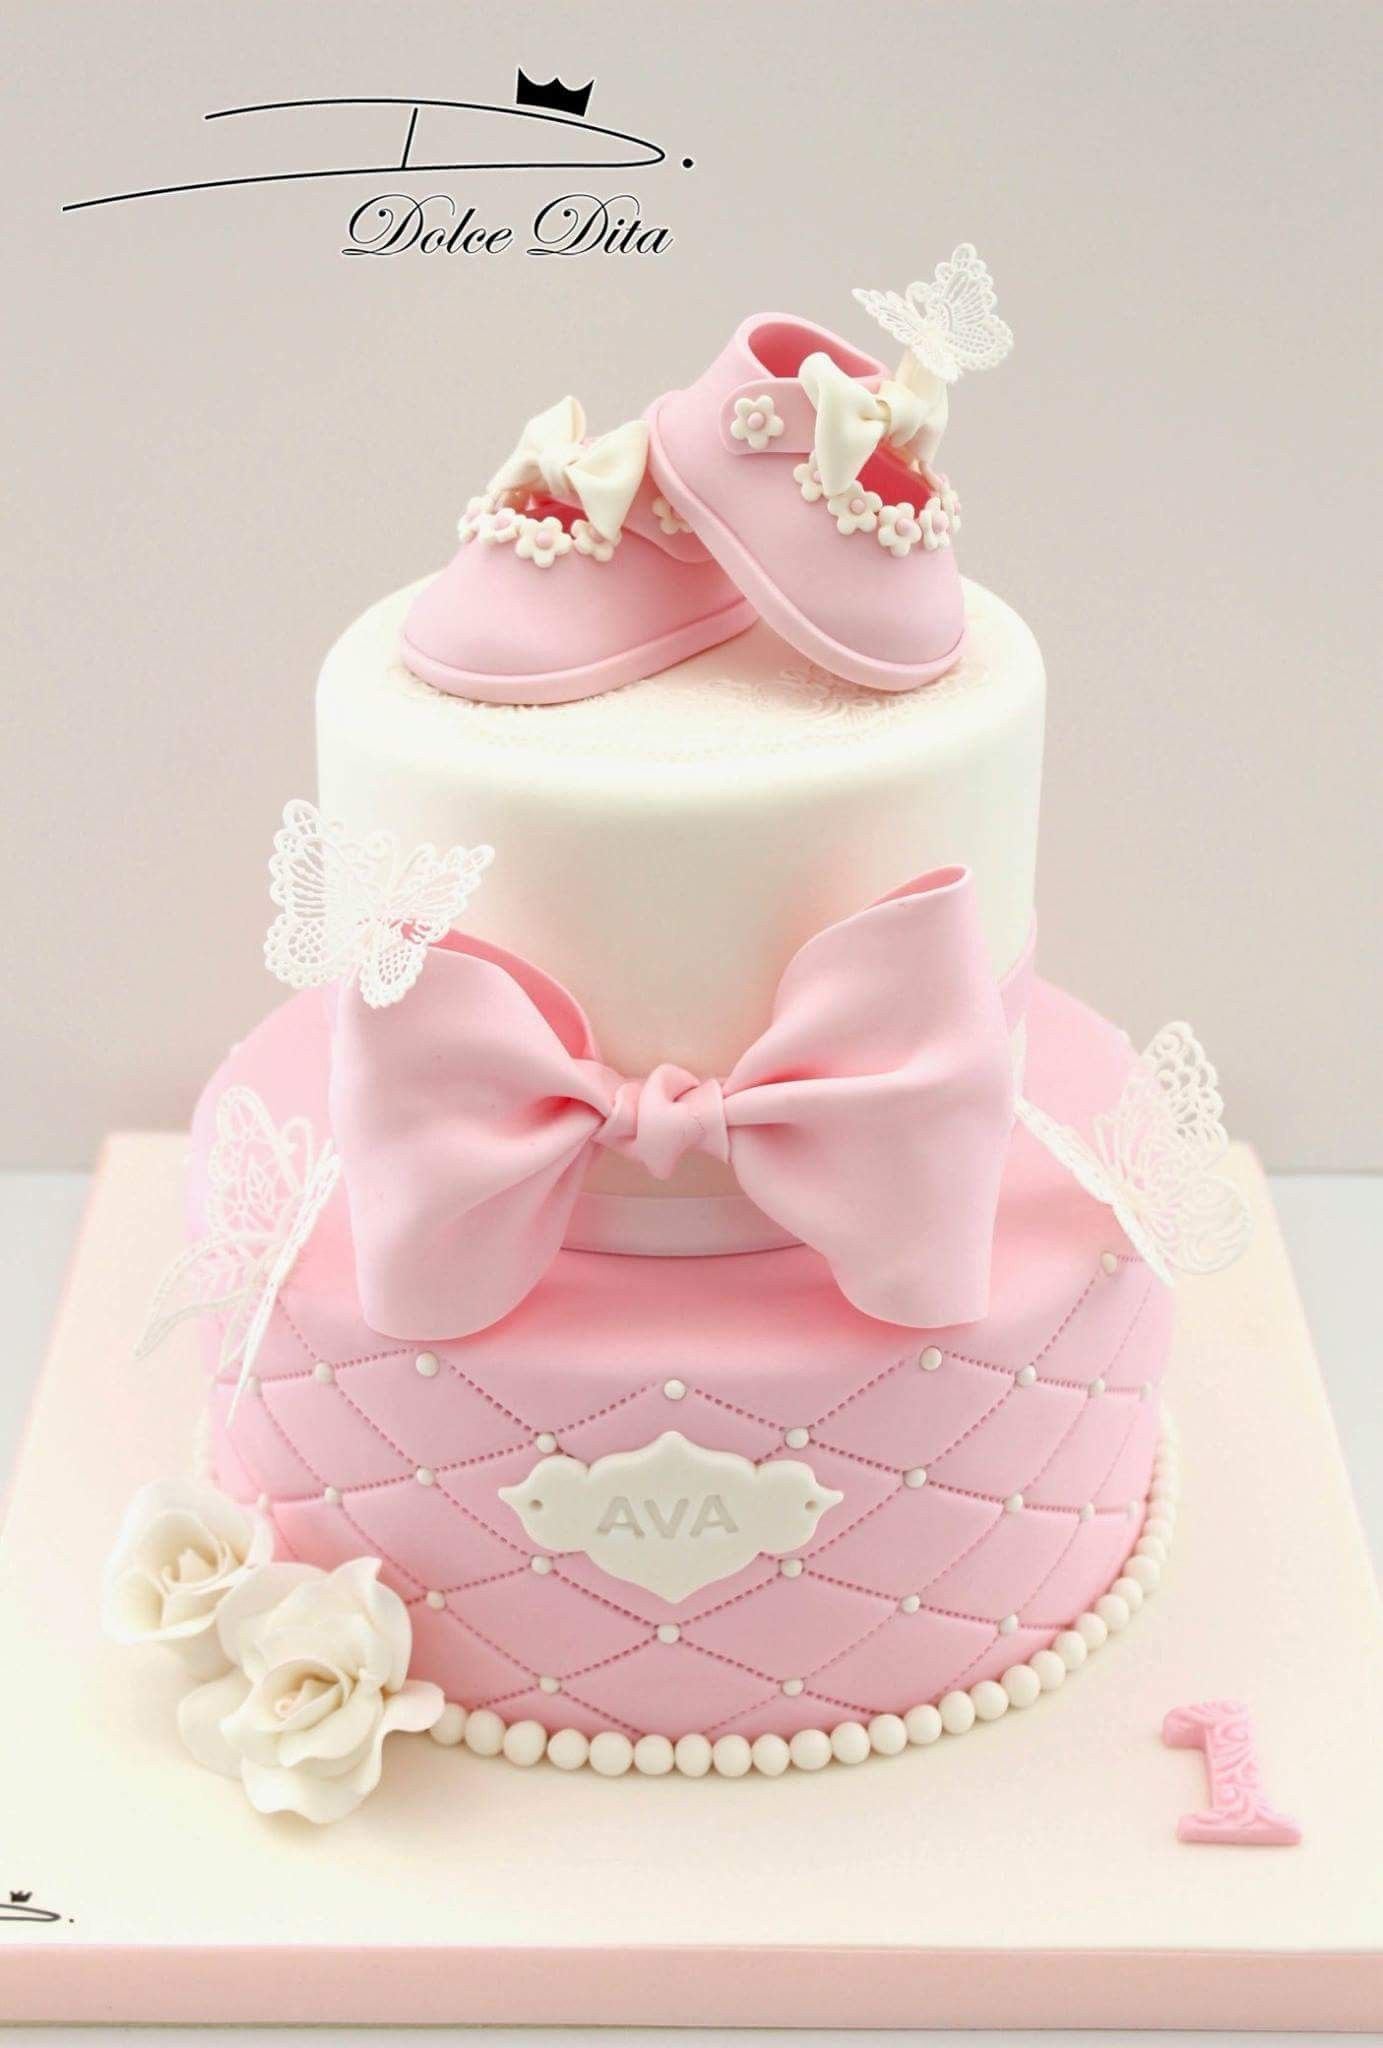 Cute cake for baby shower. Baby cake